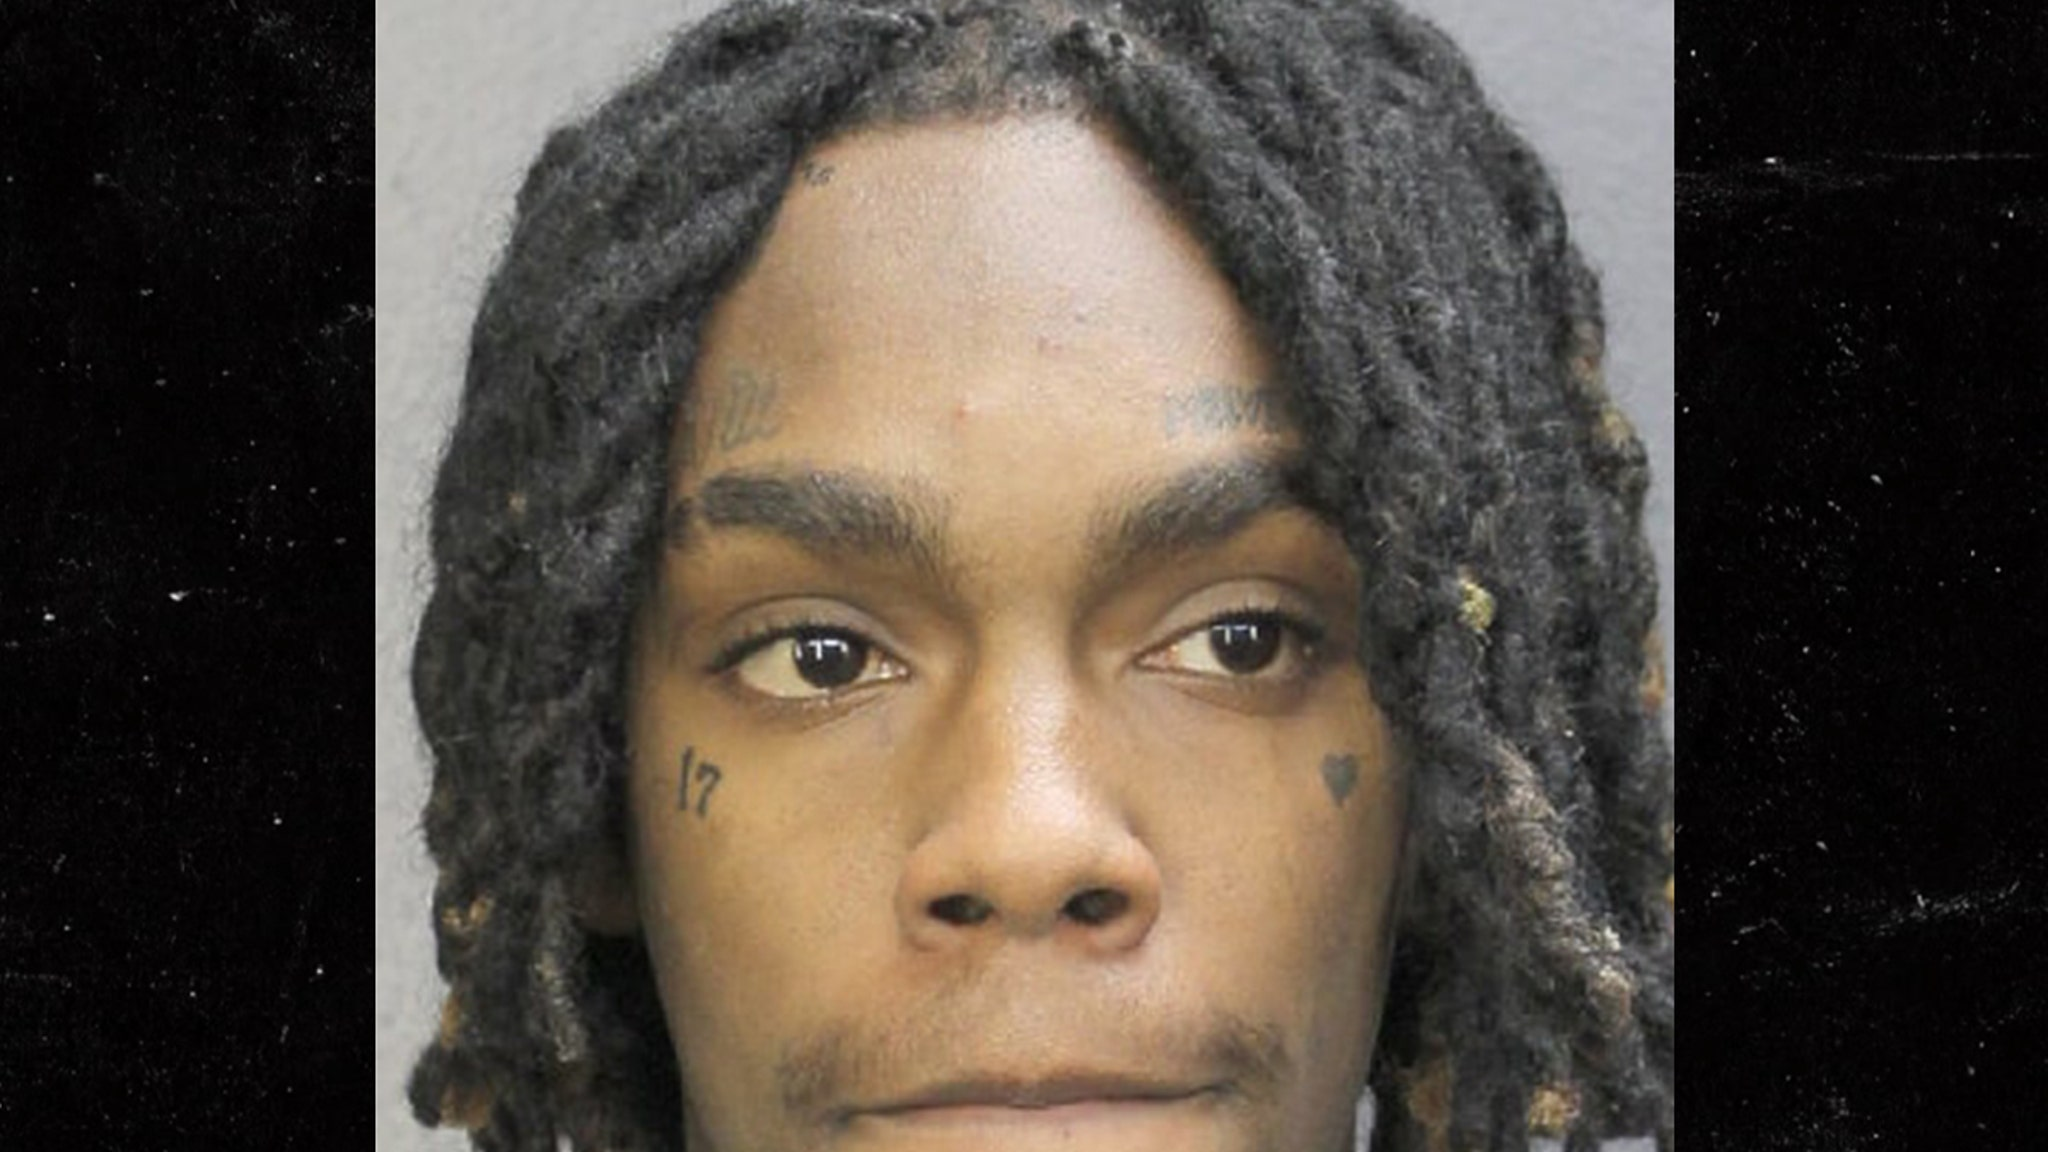 YNW Melly's DNA Sought for Potential Match to Evidence in Murder Case